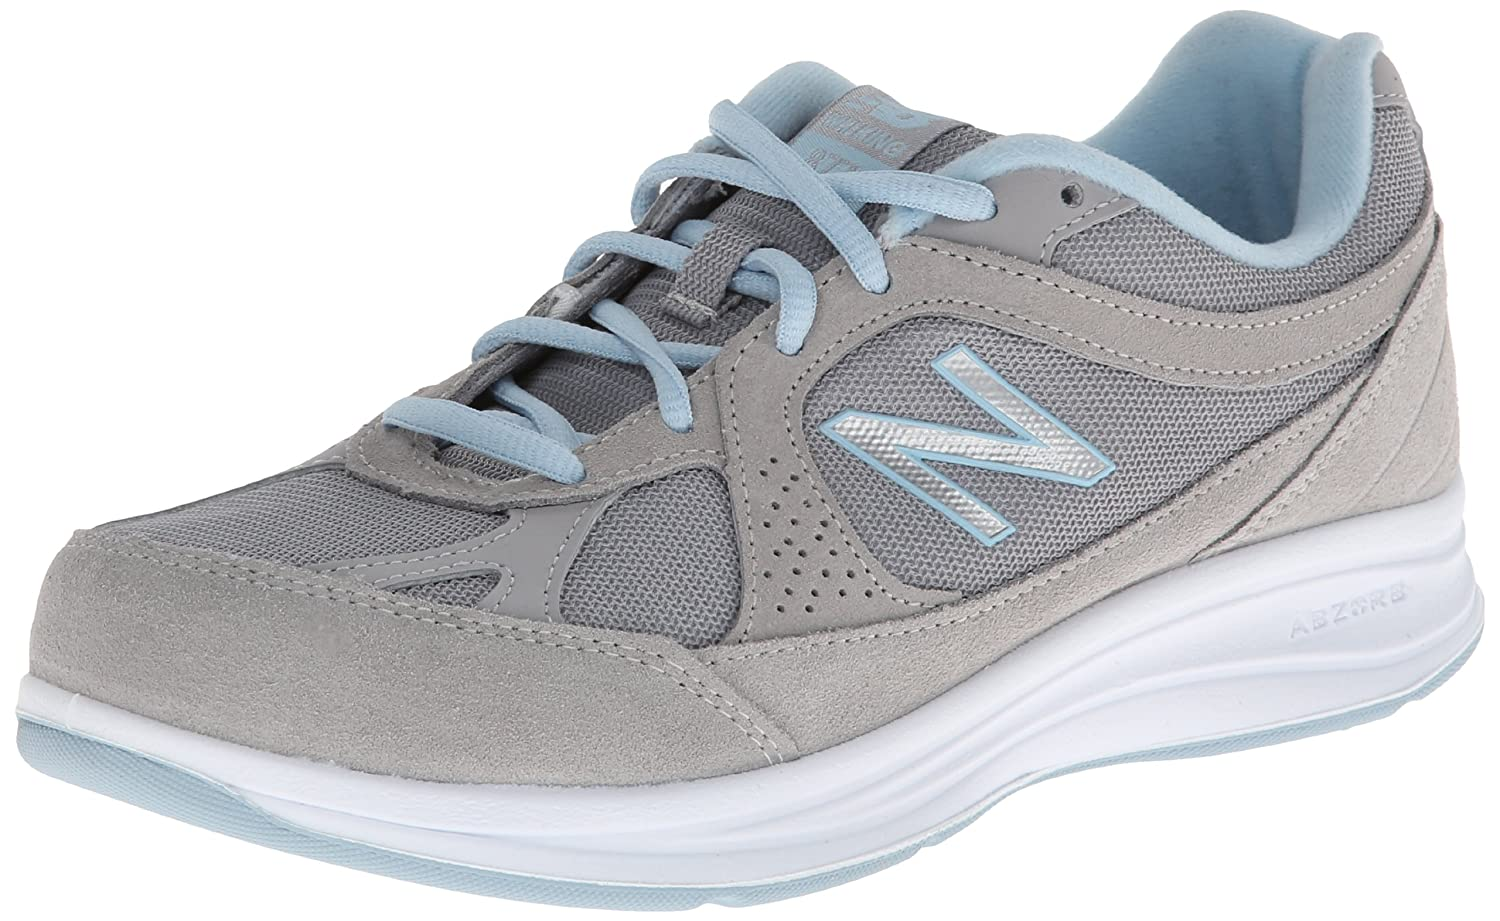 New Balance Women's WW877 Walking Shoe B00F5VE96U 6.5 B(M) US|Silver